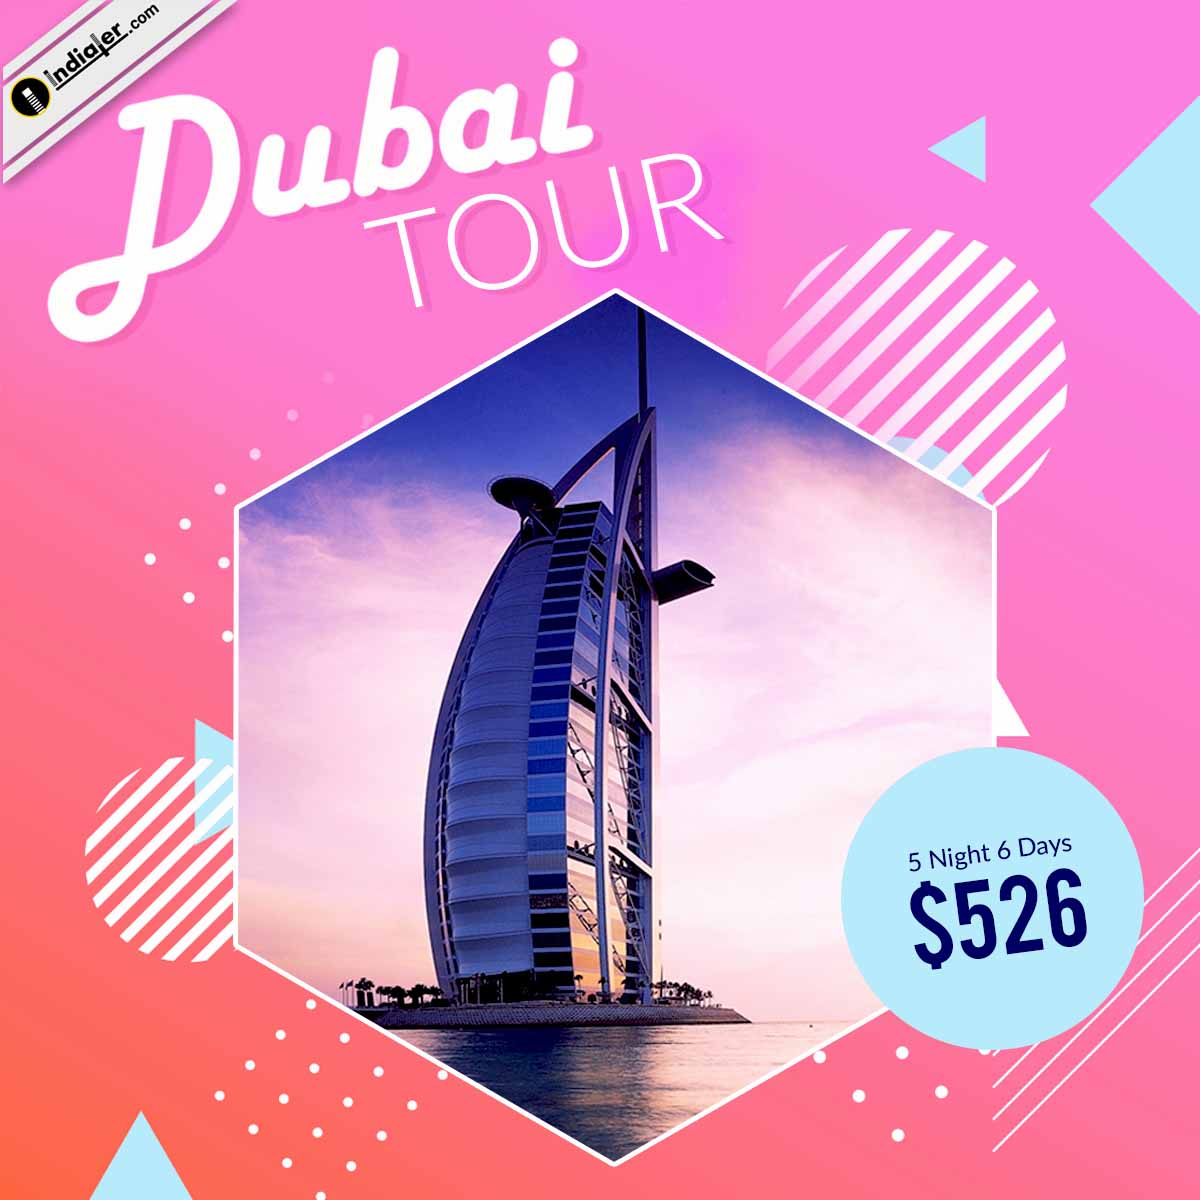 Creative Dubai Tour and Travel Social media banner